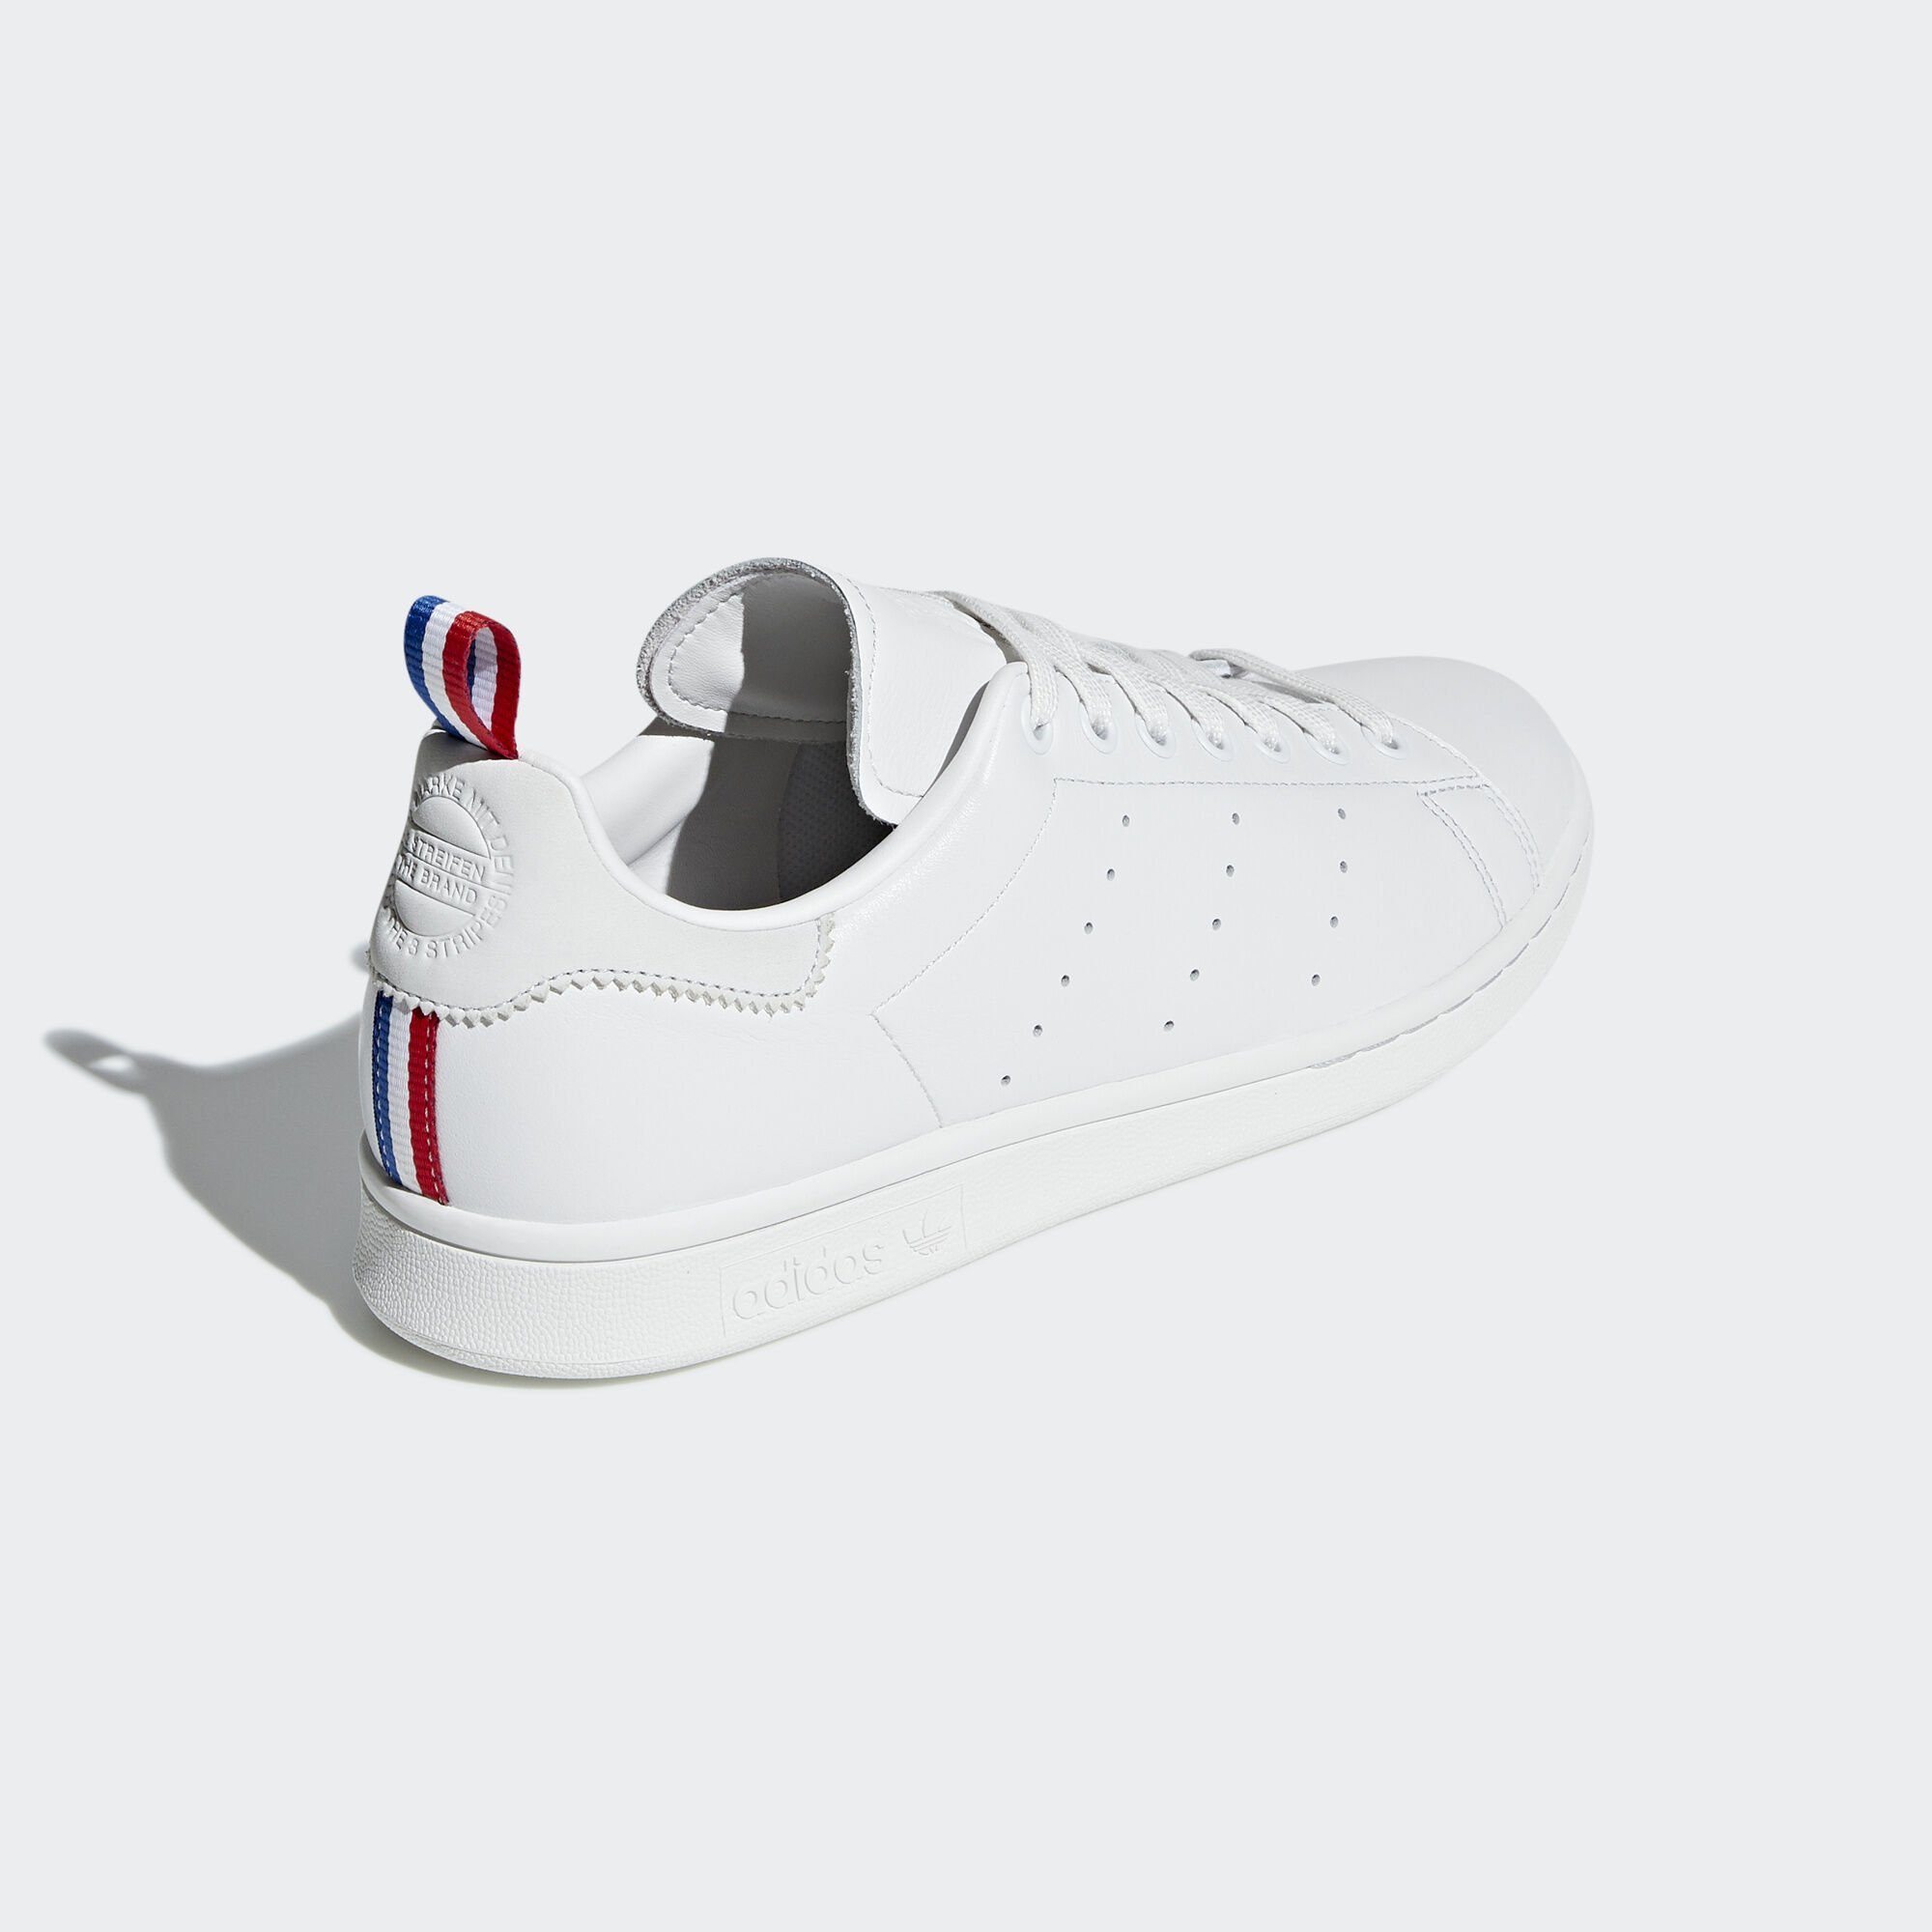 Adidas Stan Smith Crystal White / Ftwr White / Scarlet (BD7433)